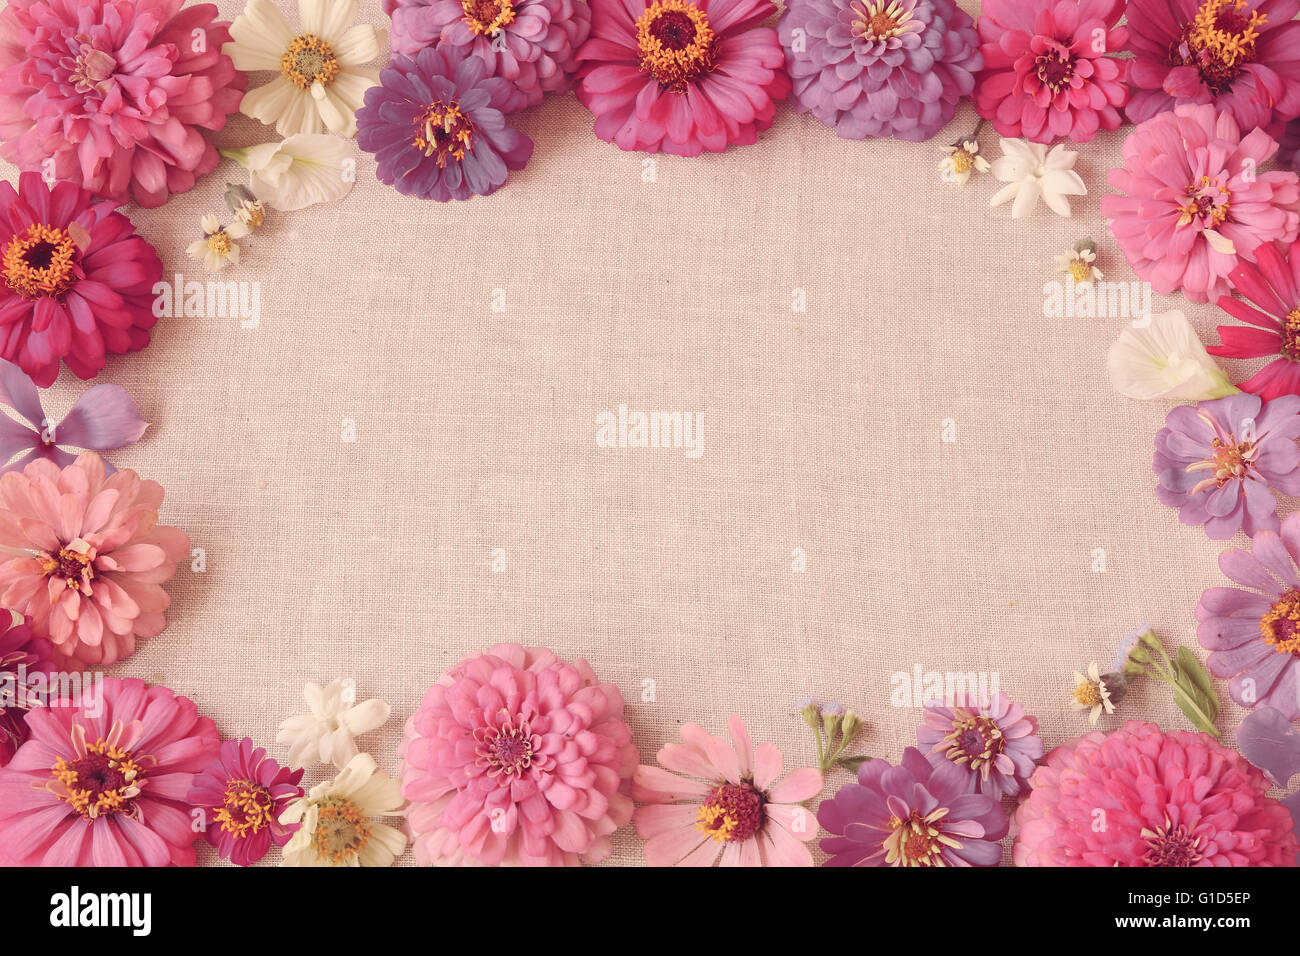 Pink flowers copy space background, selective focus, toning - Stock Image